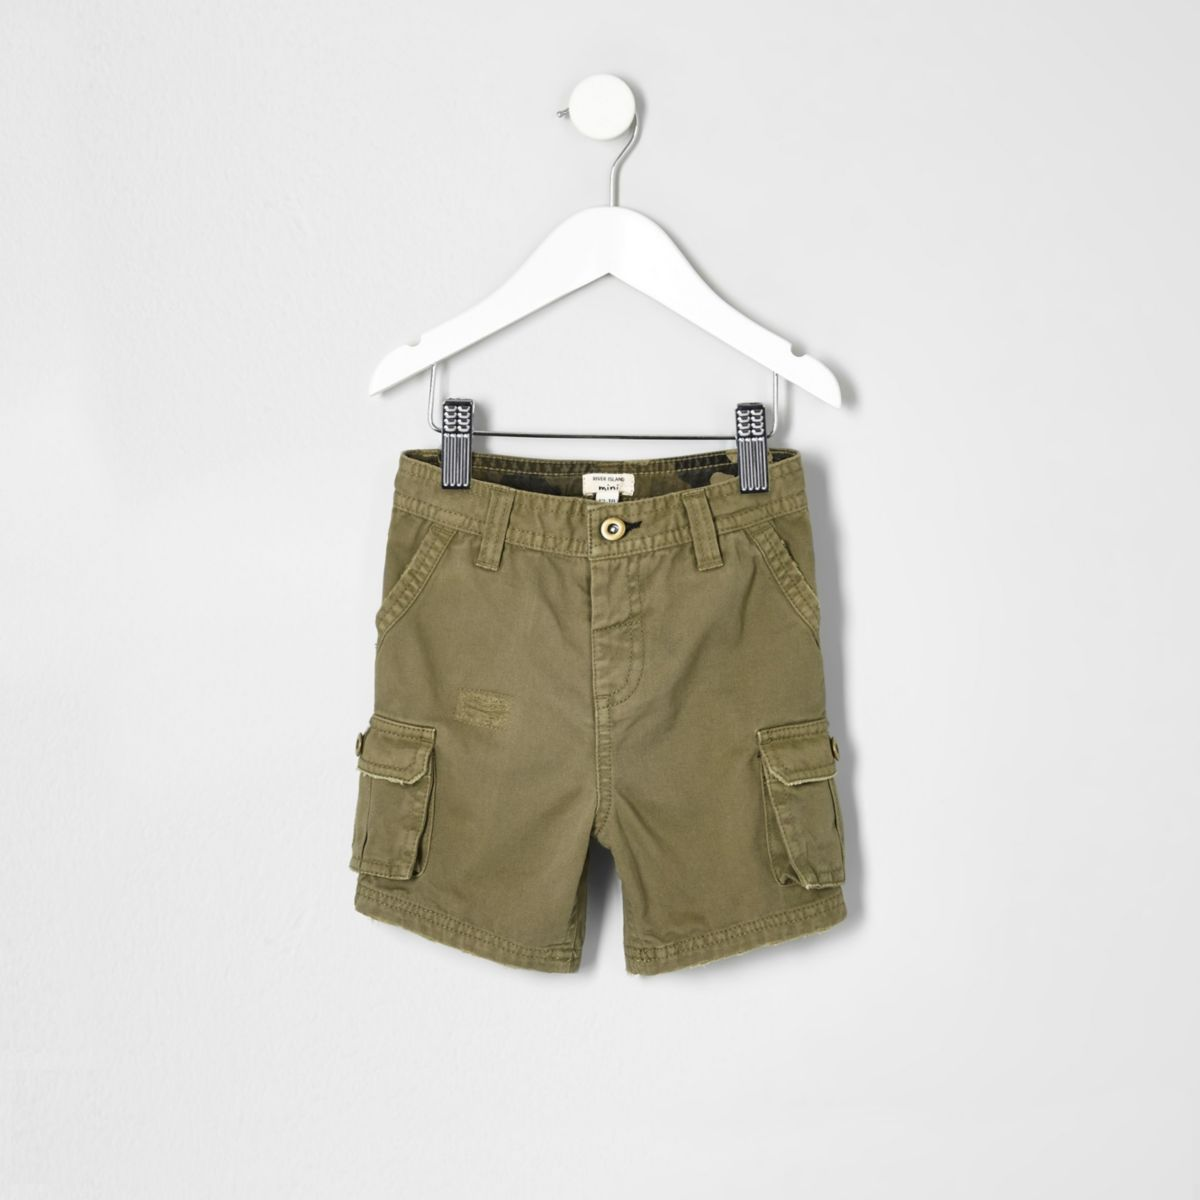 Cargo Shorts for Men Kick back and relax in Men's Cargo Shorts from Kohl's. Kohl's offers many different styles and types of men's cargo shorts, like men's flat front cargo shorts, men's Dickies cargo shorts, and big & tall cargo shorts.